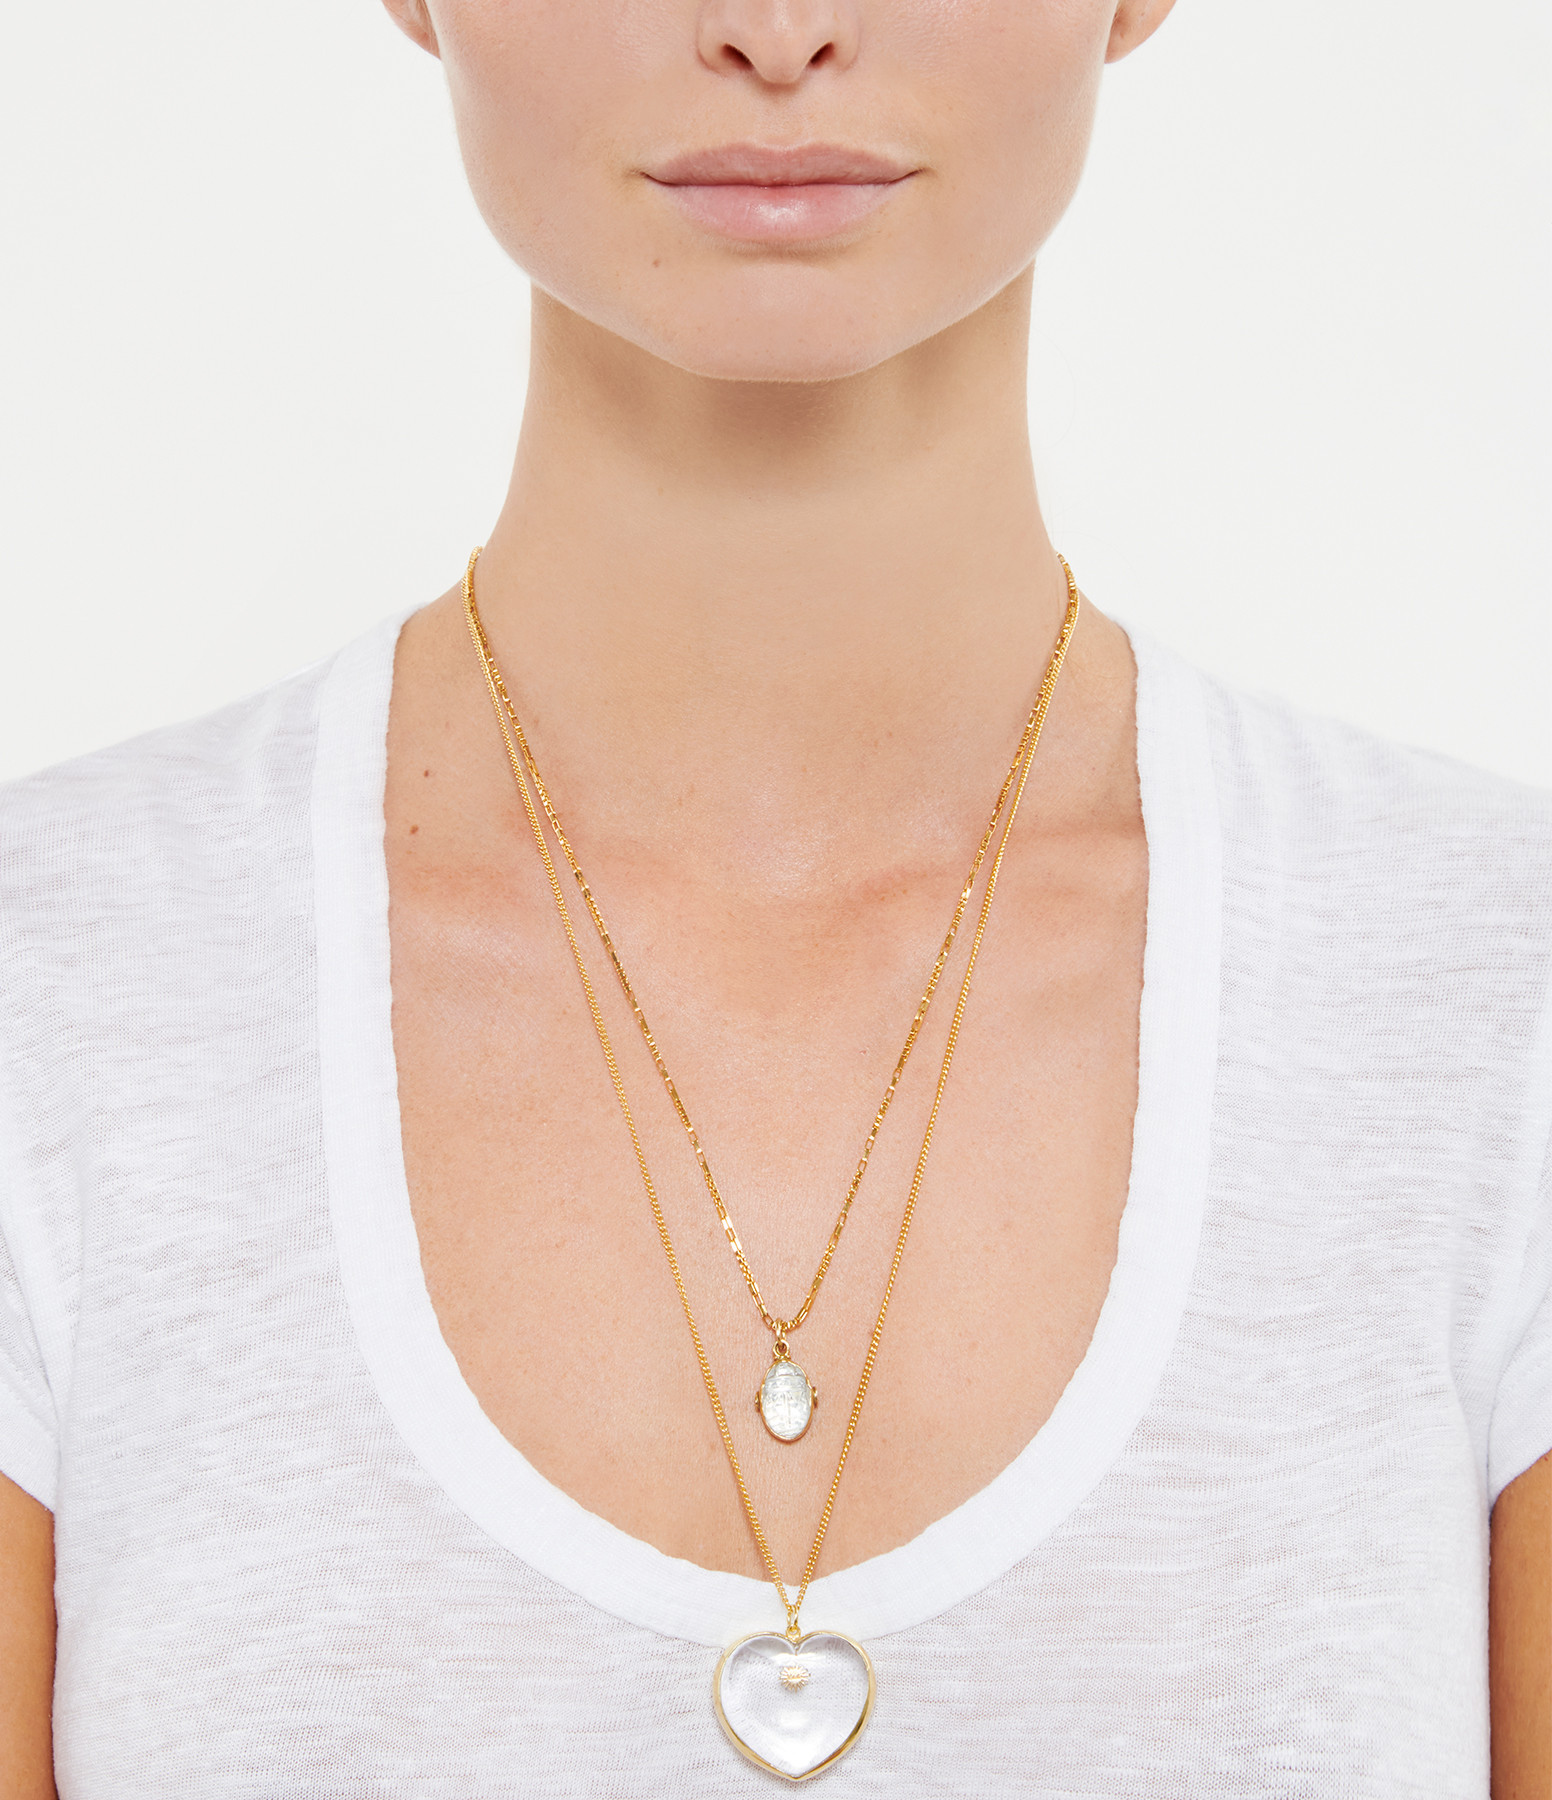 VADI JEWELS - Collier Amour Cristal Plaqué Or